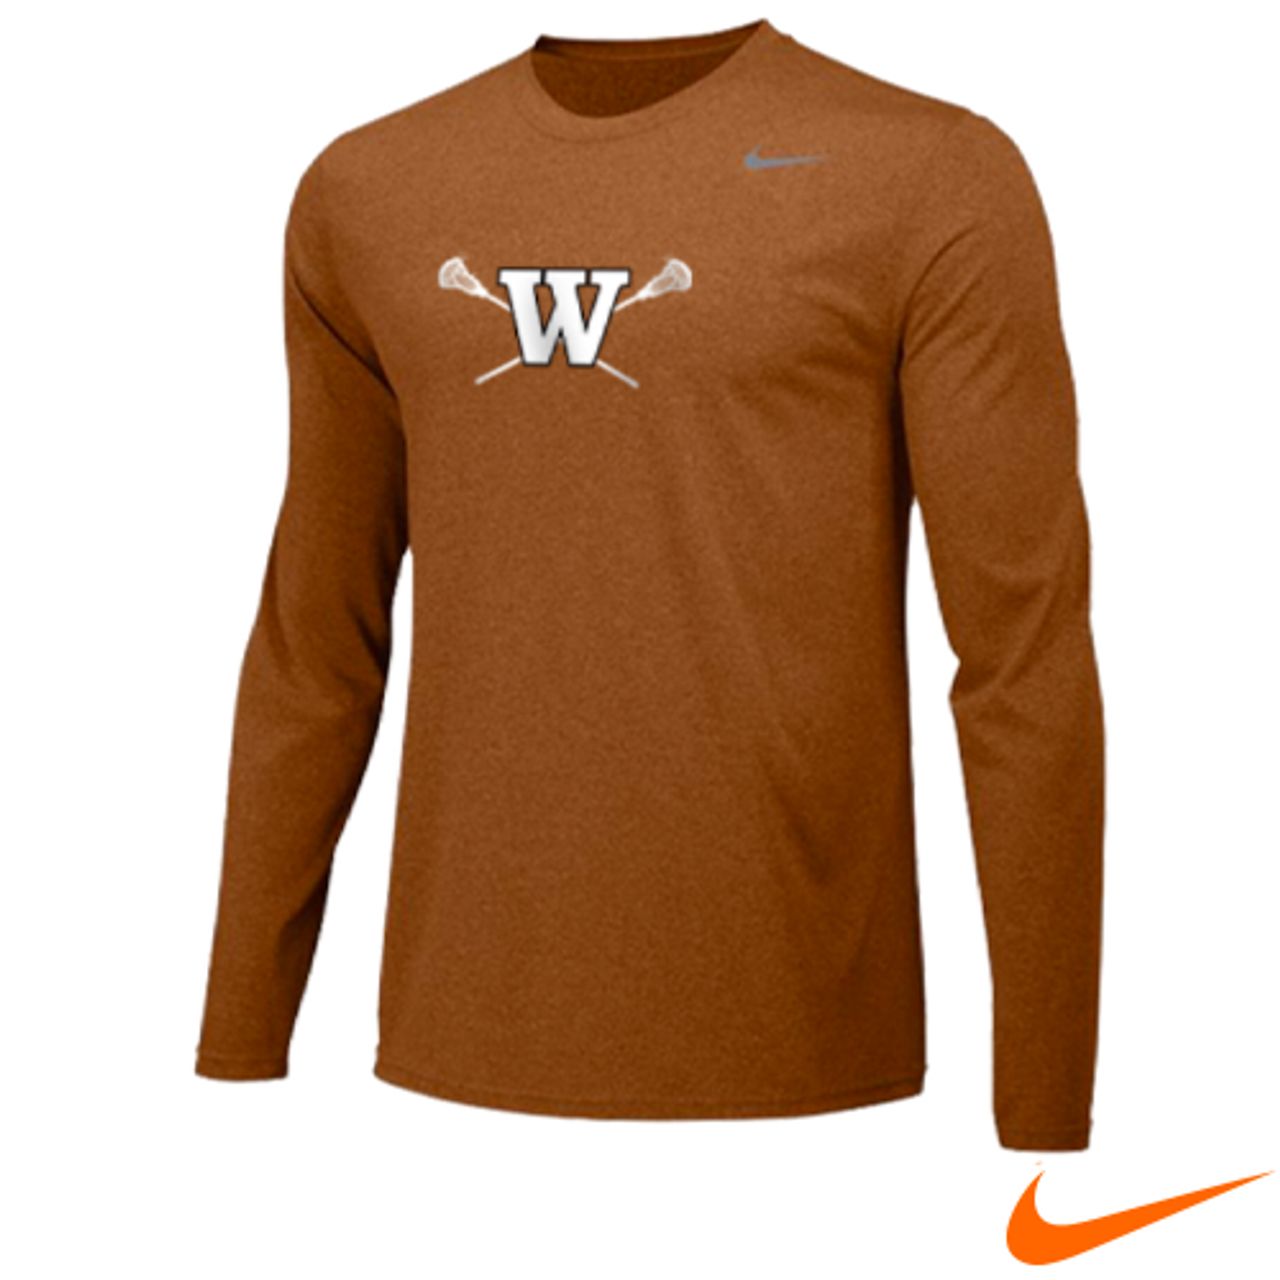 customize a nike shirt